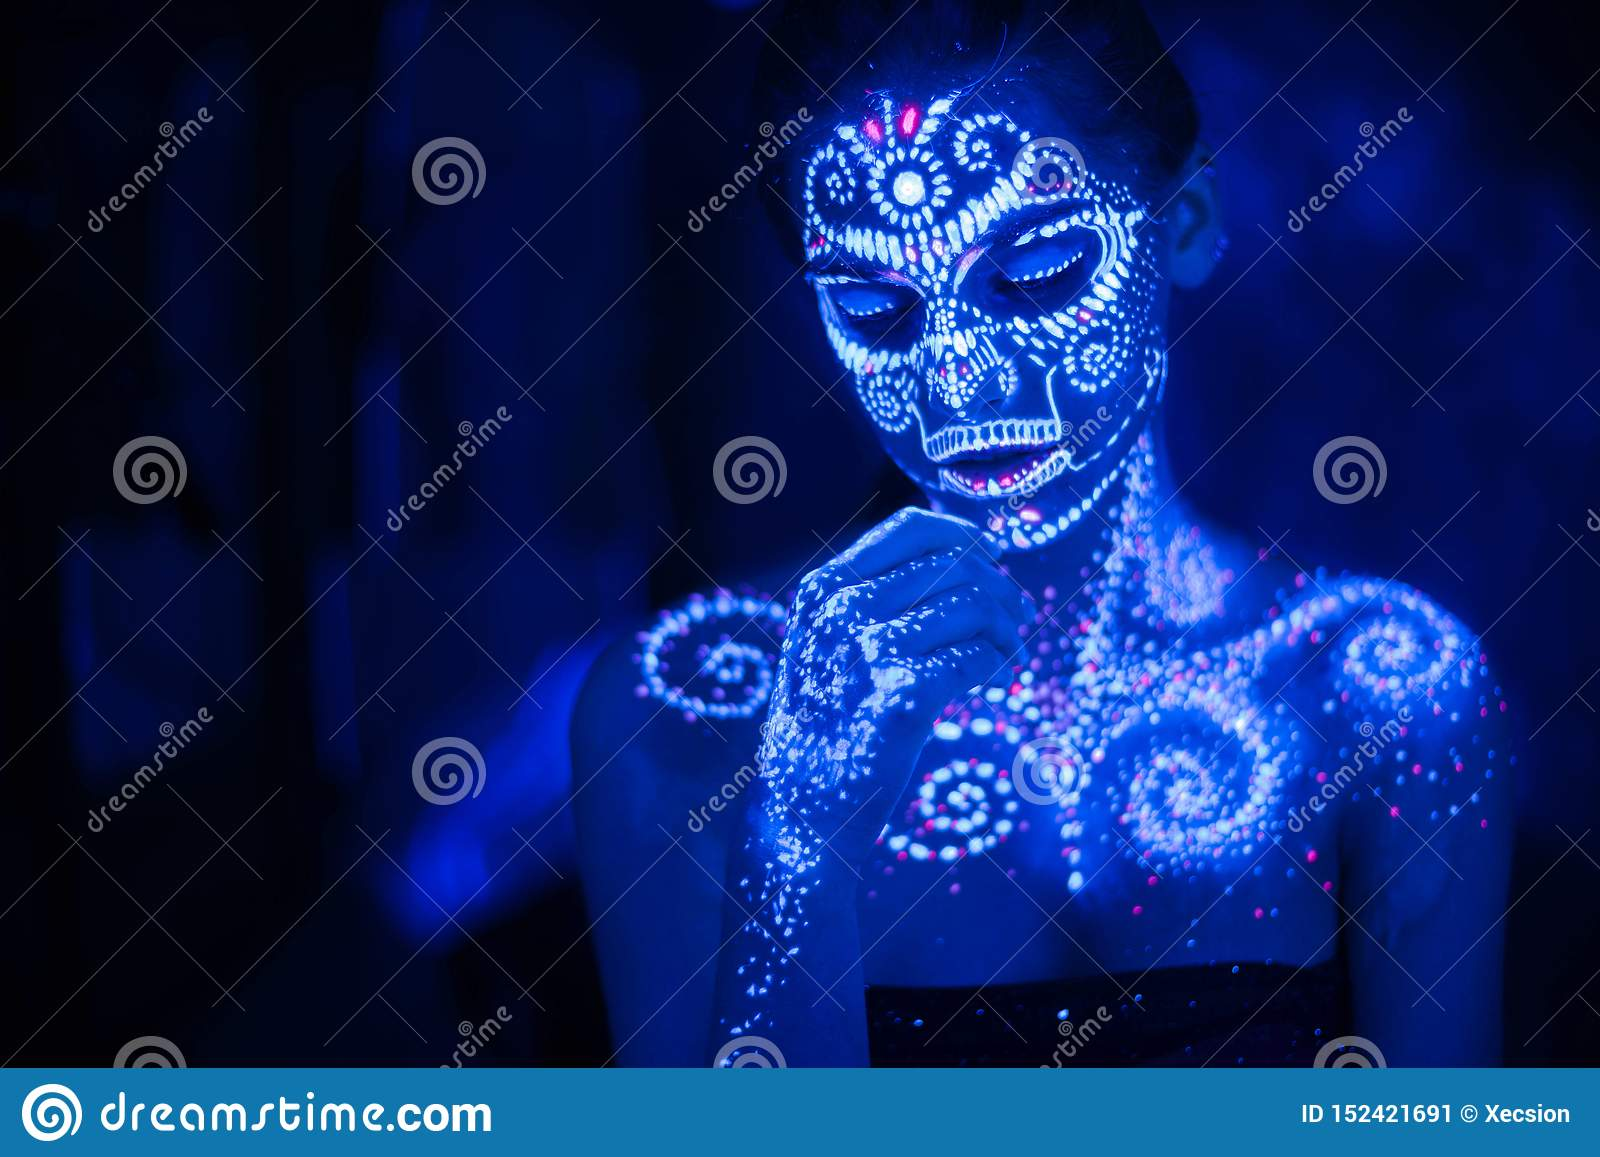 Body art on the body and hand of a girl glowing in the ultraviolet light